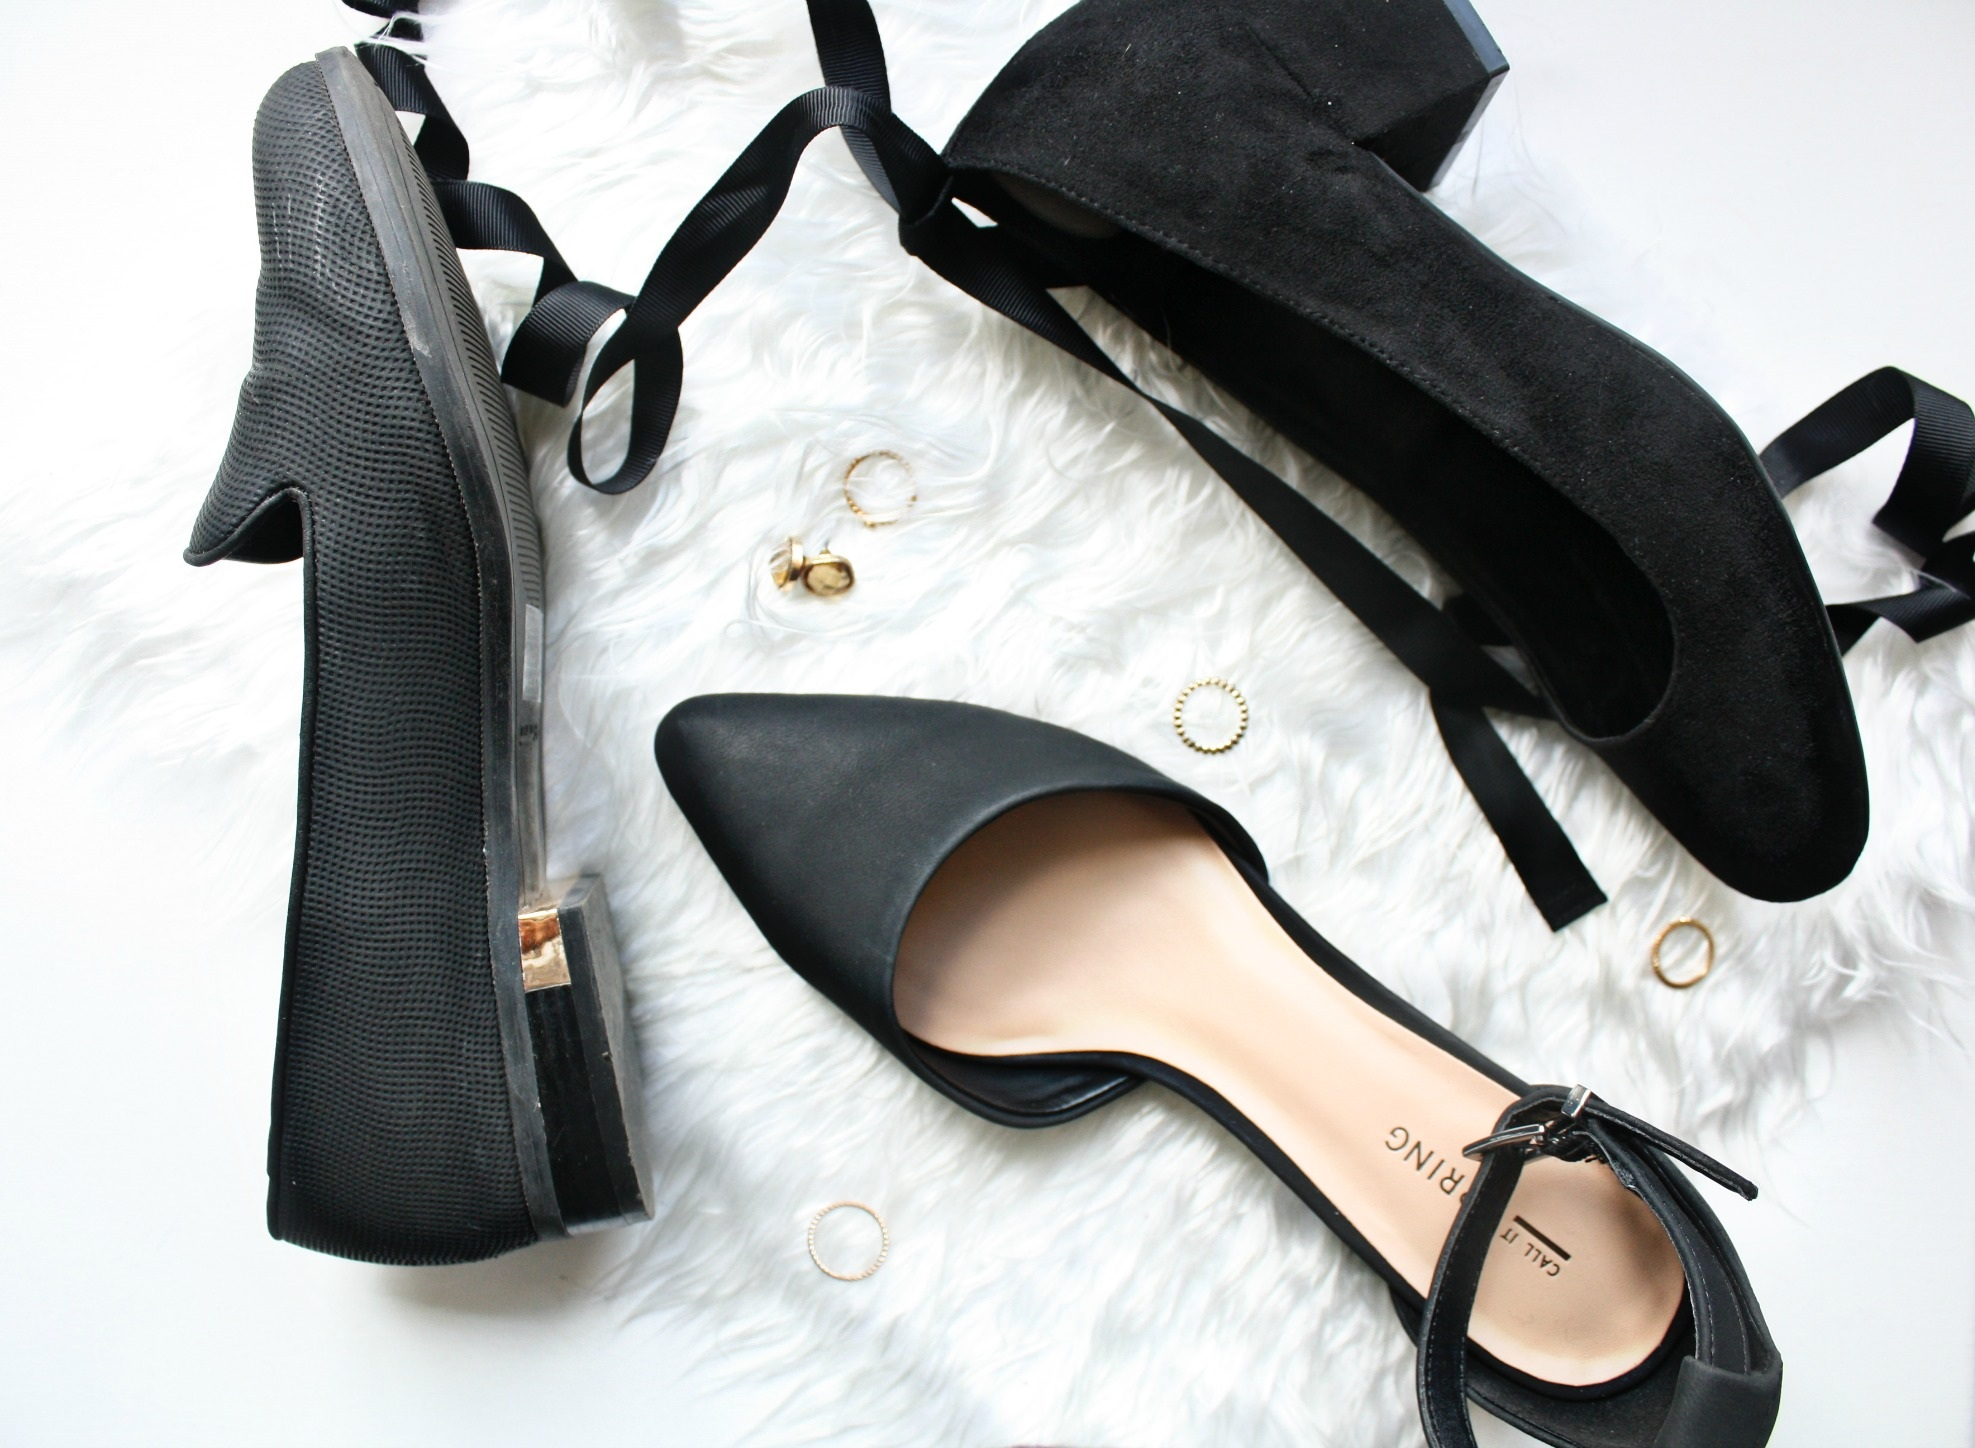 Spring Clothing Accessories for Women including Jewelries and Shoes